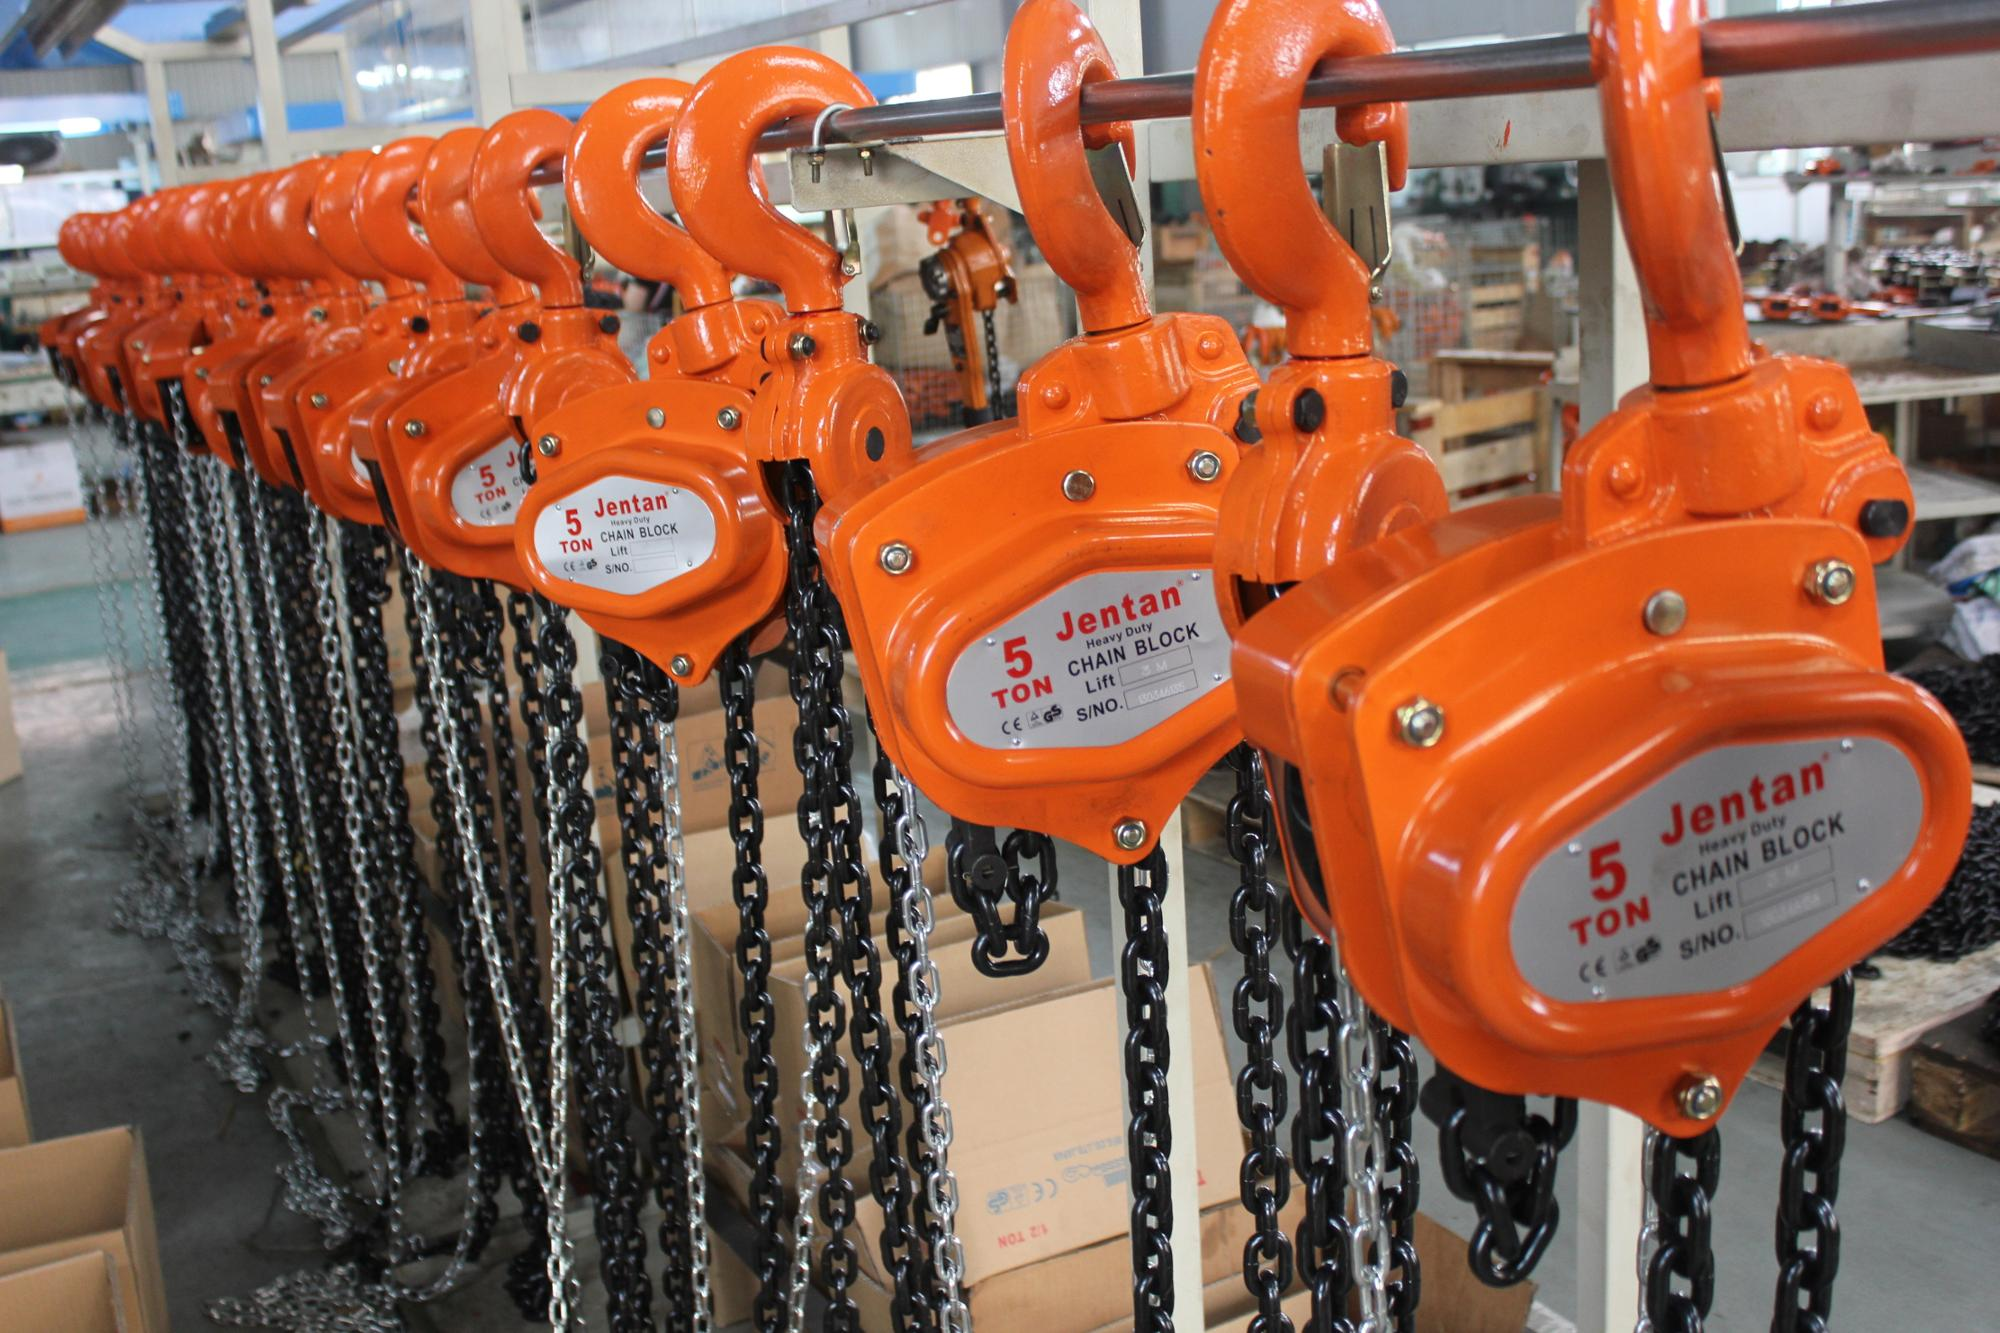 JenTan chain block hoist TUV CE approved 2 ton lifting chain hoist